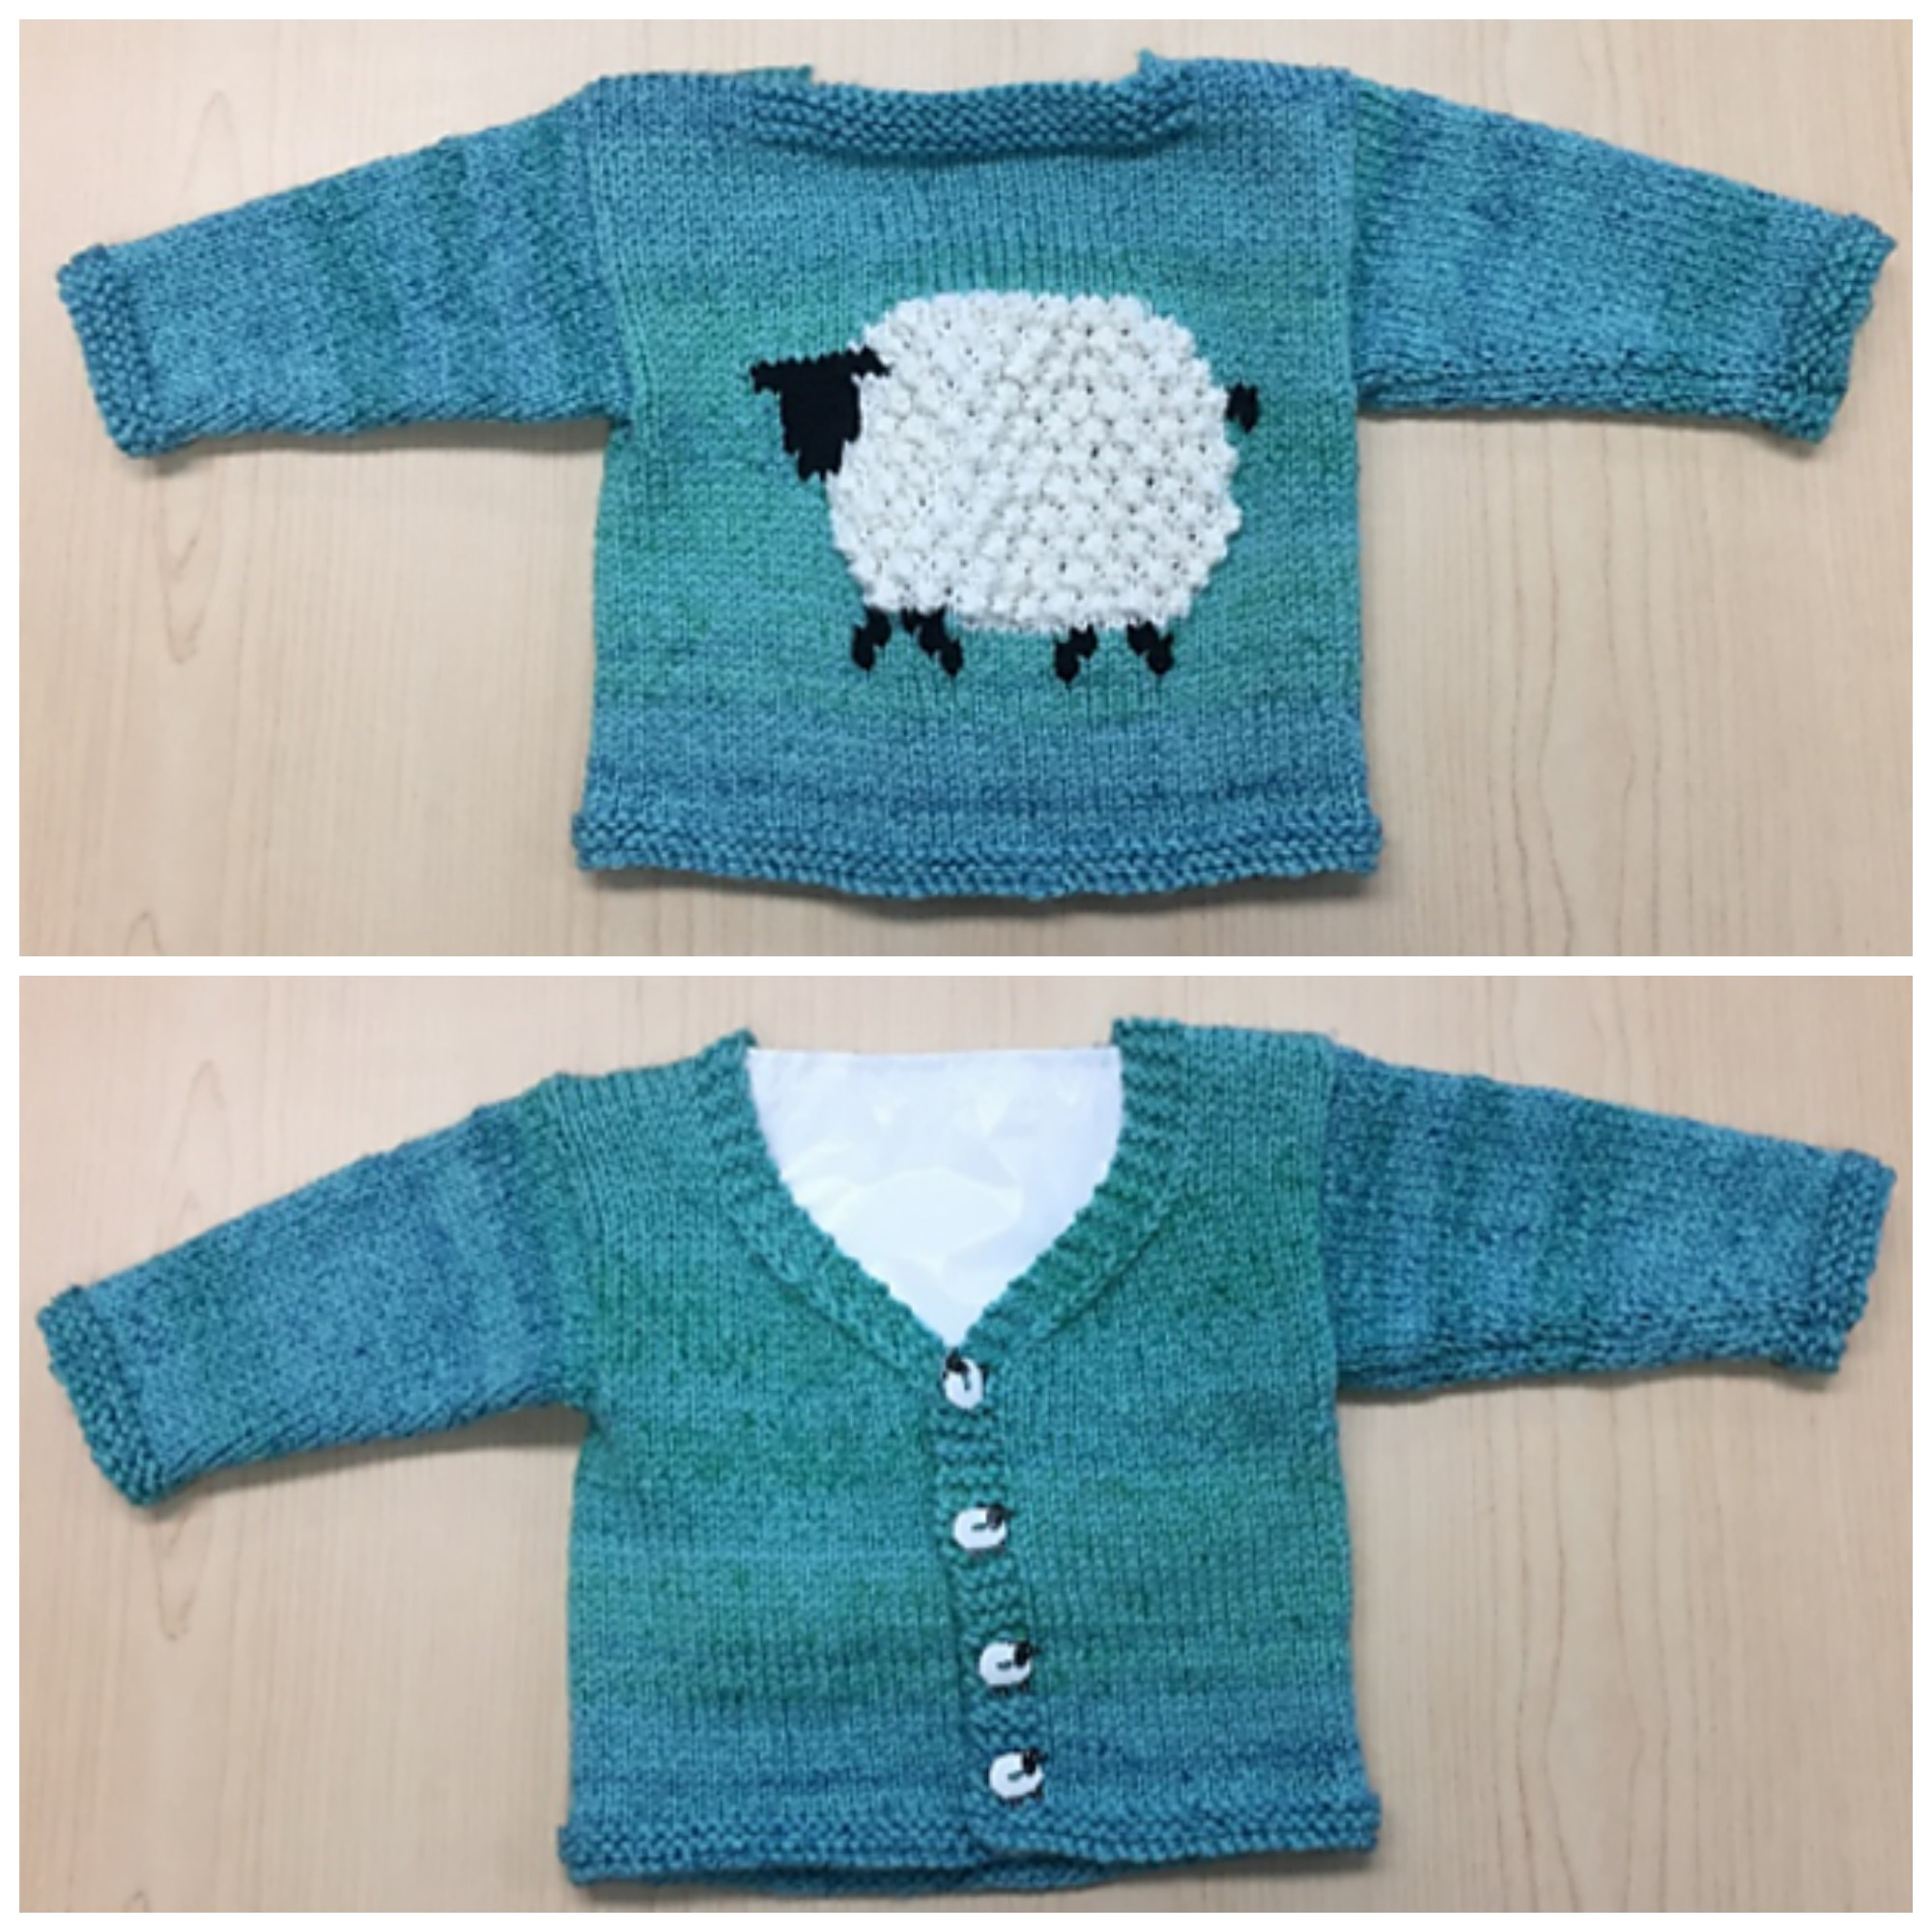 Knit a Mary's Little Lamb Cardigan ... So Cute!